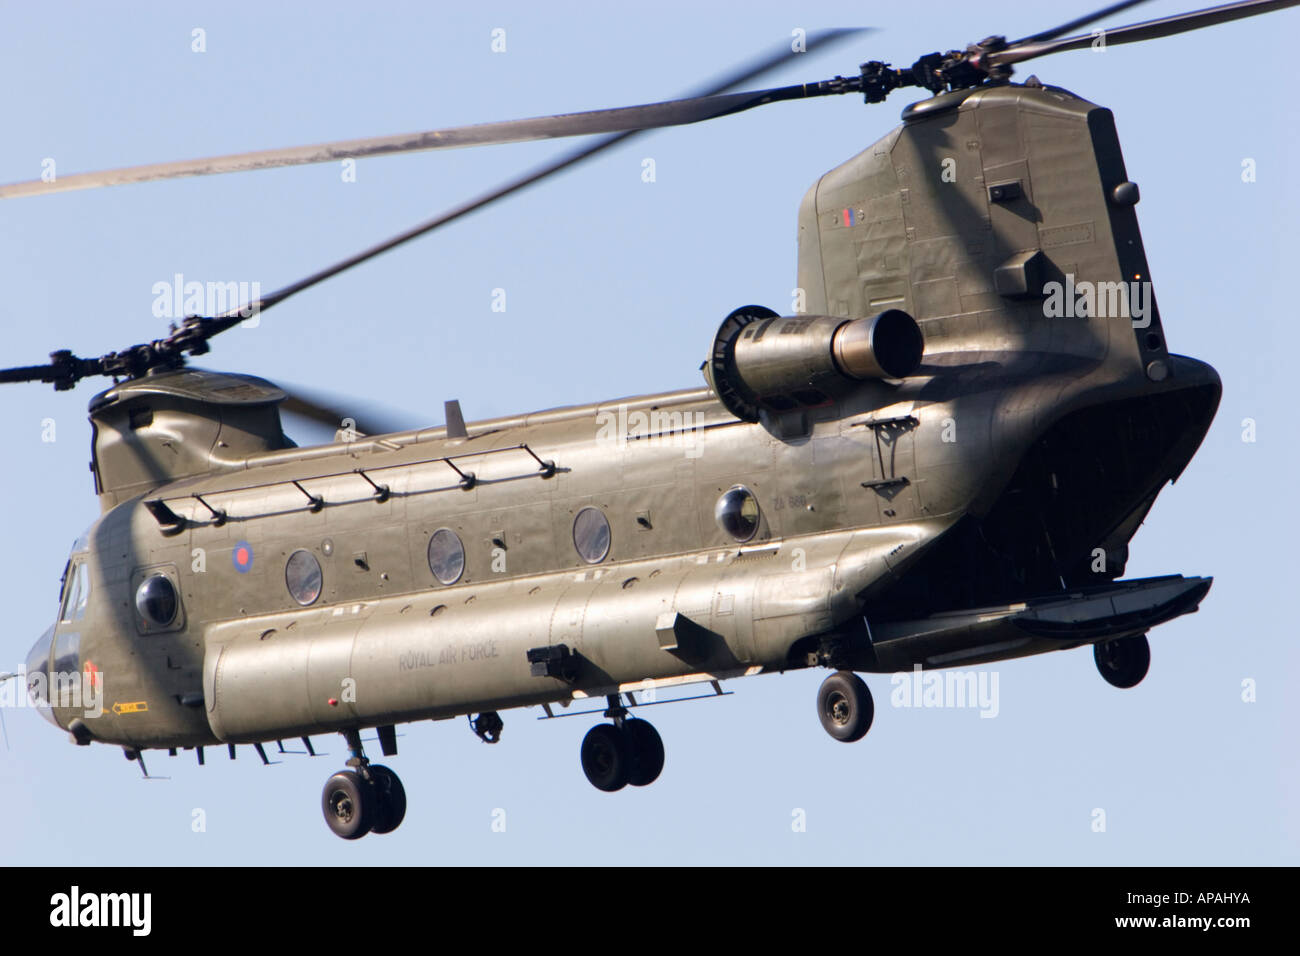 hight resolution of raf chinook hc2 helicopter 18 squadron rear loading door open stock image